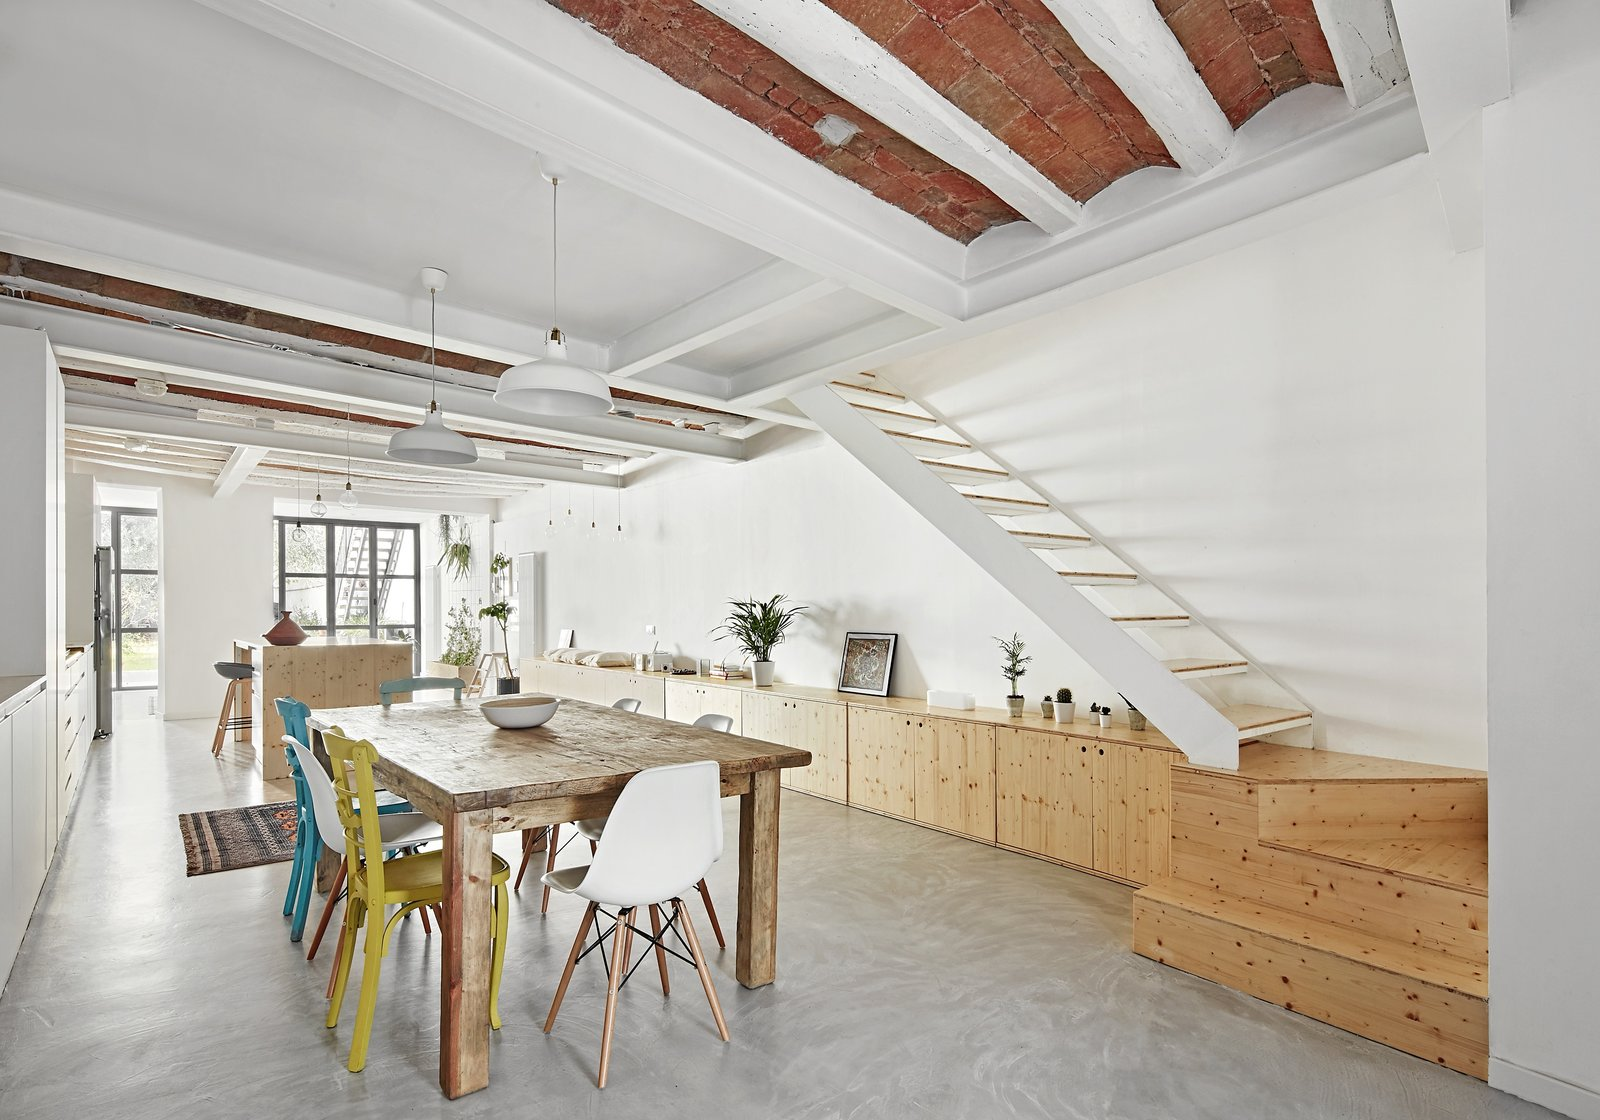 Dining Room, Concrete Floor, Chair, Pendant Lighting, Table, Storage, and Rug Floor  Photo 10 of 11 in Can This Renovated, Loft-Like Home in Spain Be Any Dreamier?